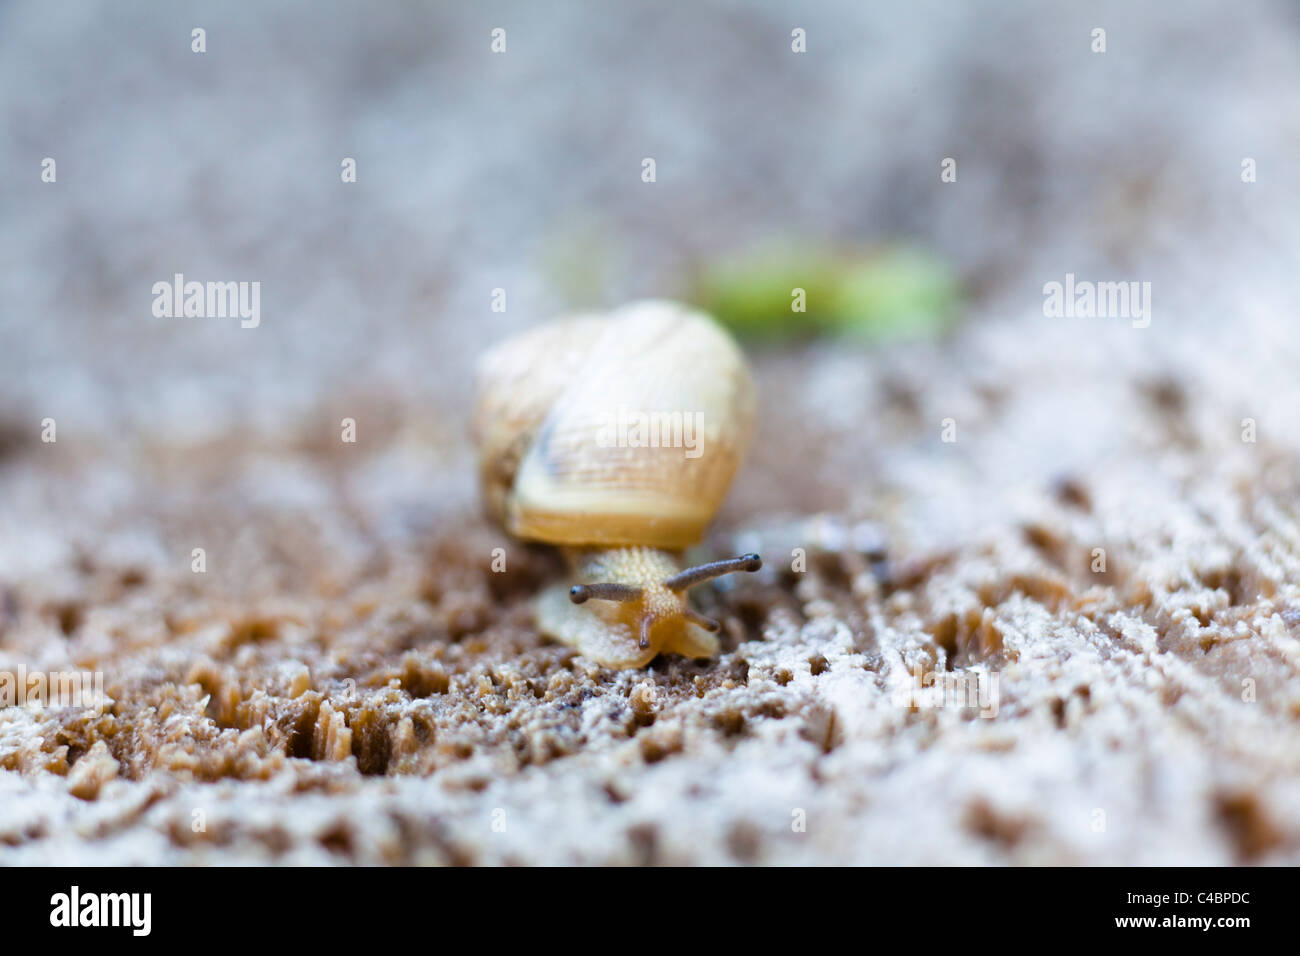 snail crawling on a wooden surface - Stock Image